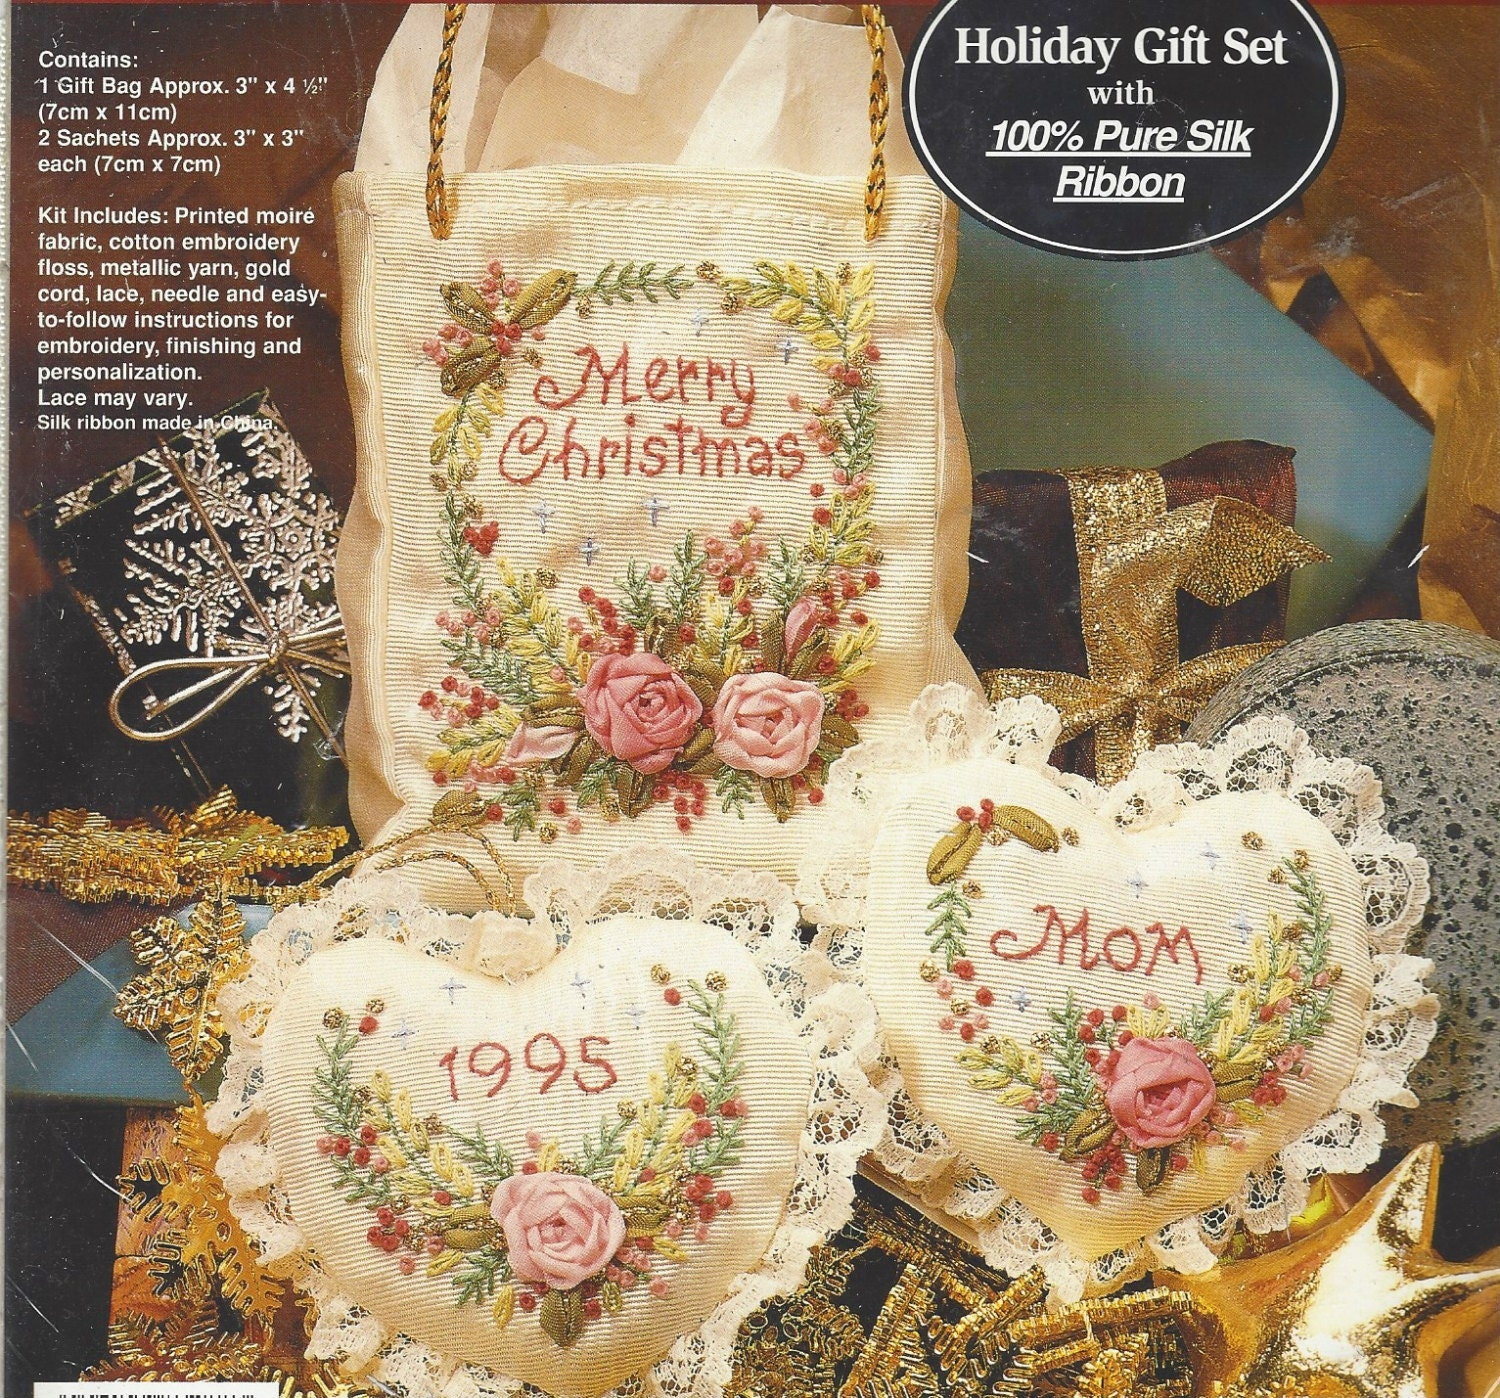 Jan Hagara Cross Stitch Patterns: 90s Merry Christmas Silk Ribbon Embroidery Kit Bucilla Holiday